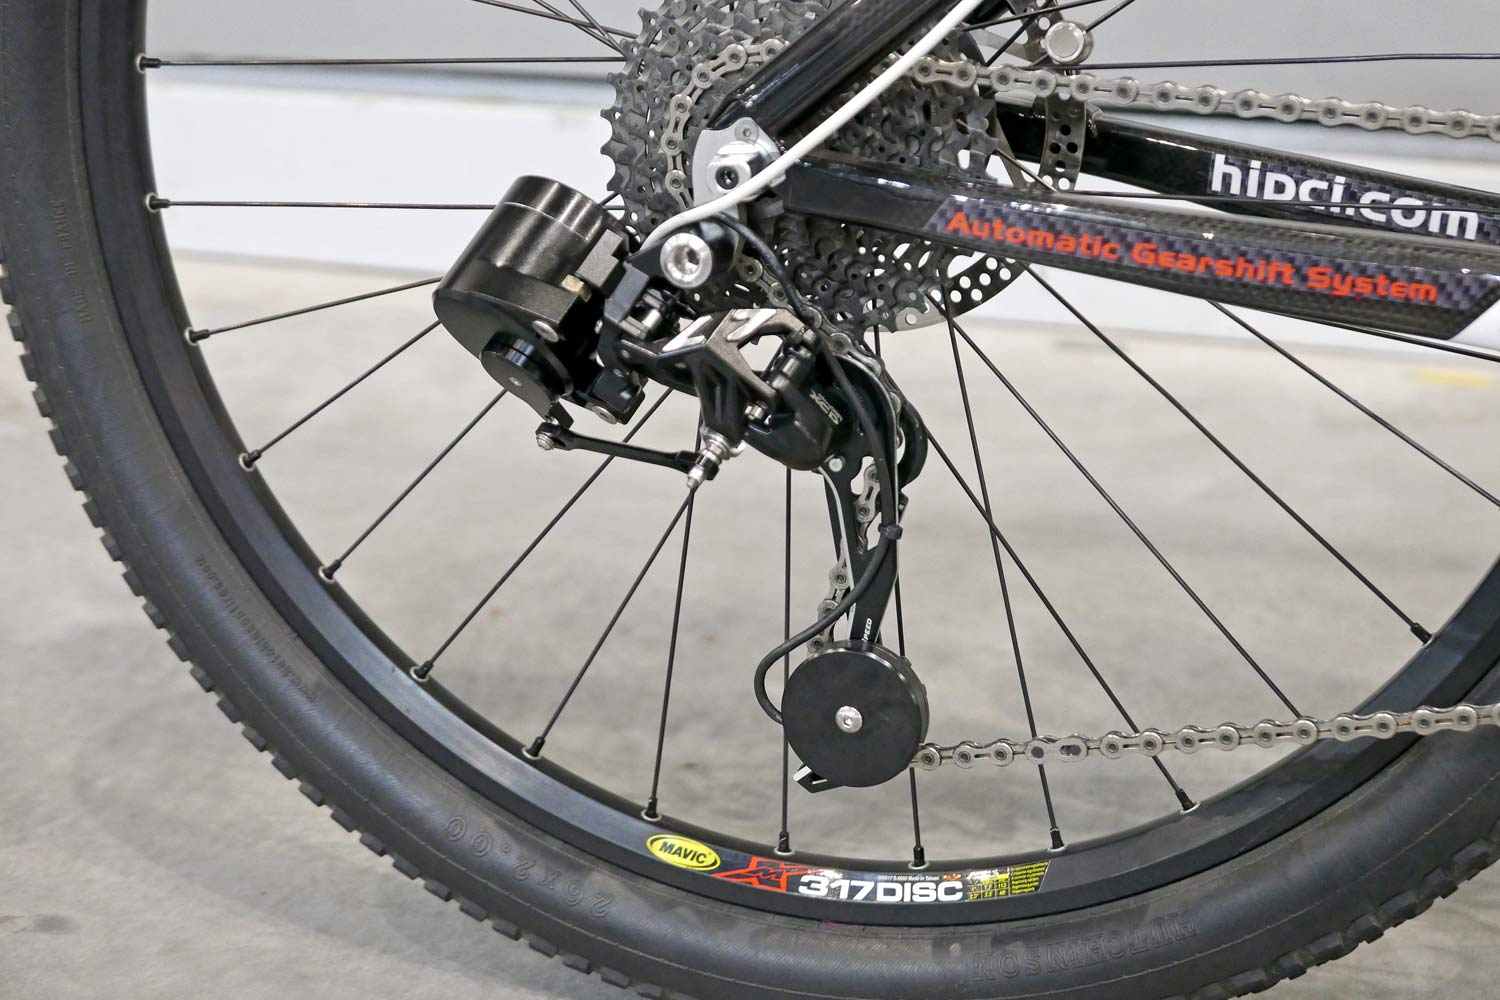 Automatic Gearshift System Smart Derailleur Delivers Auto 1x Shifts